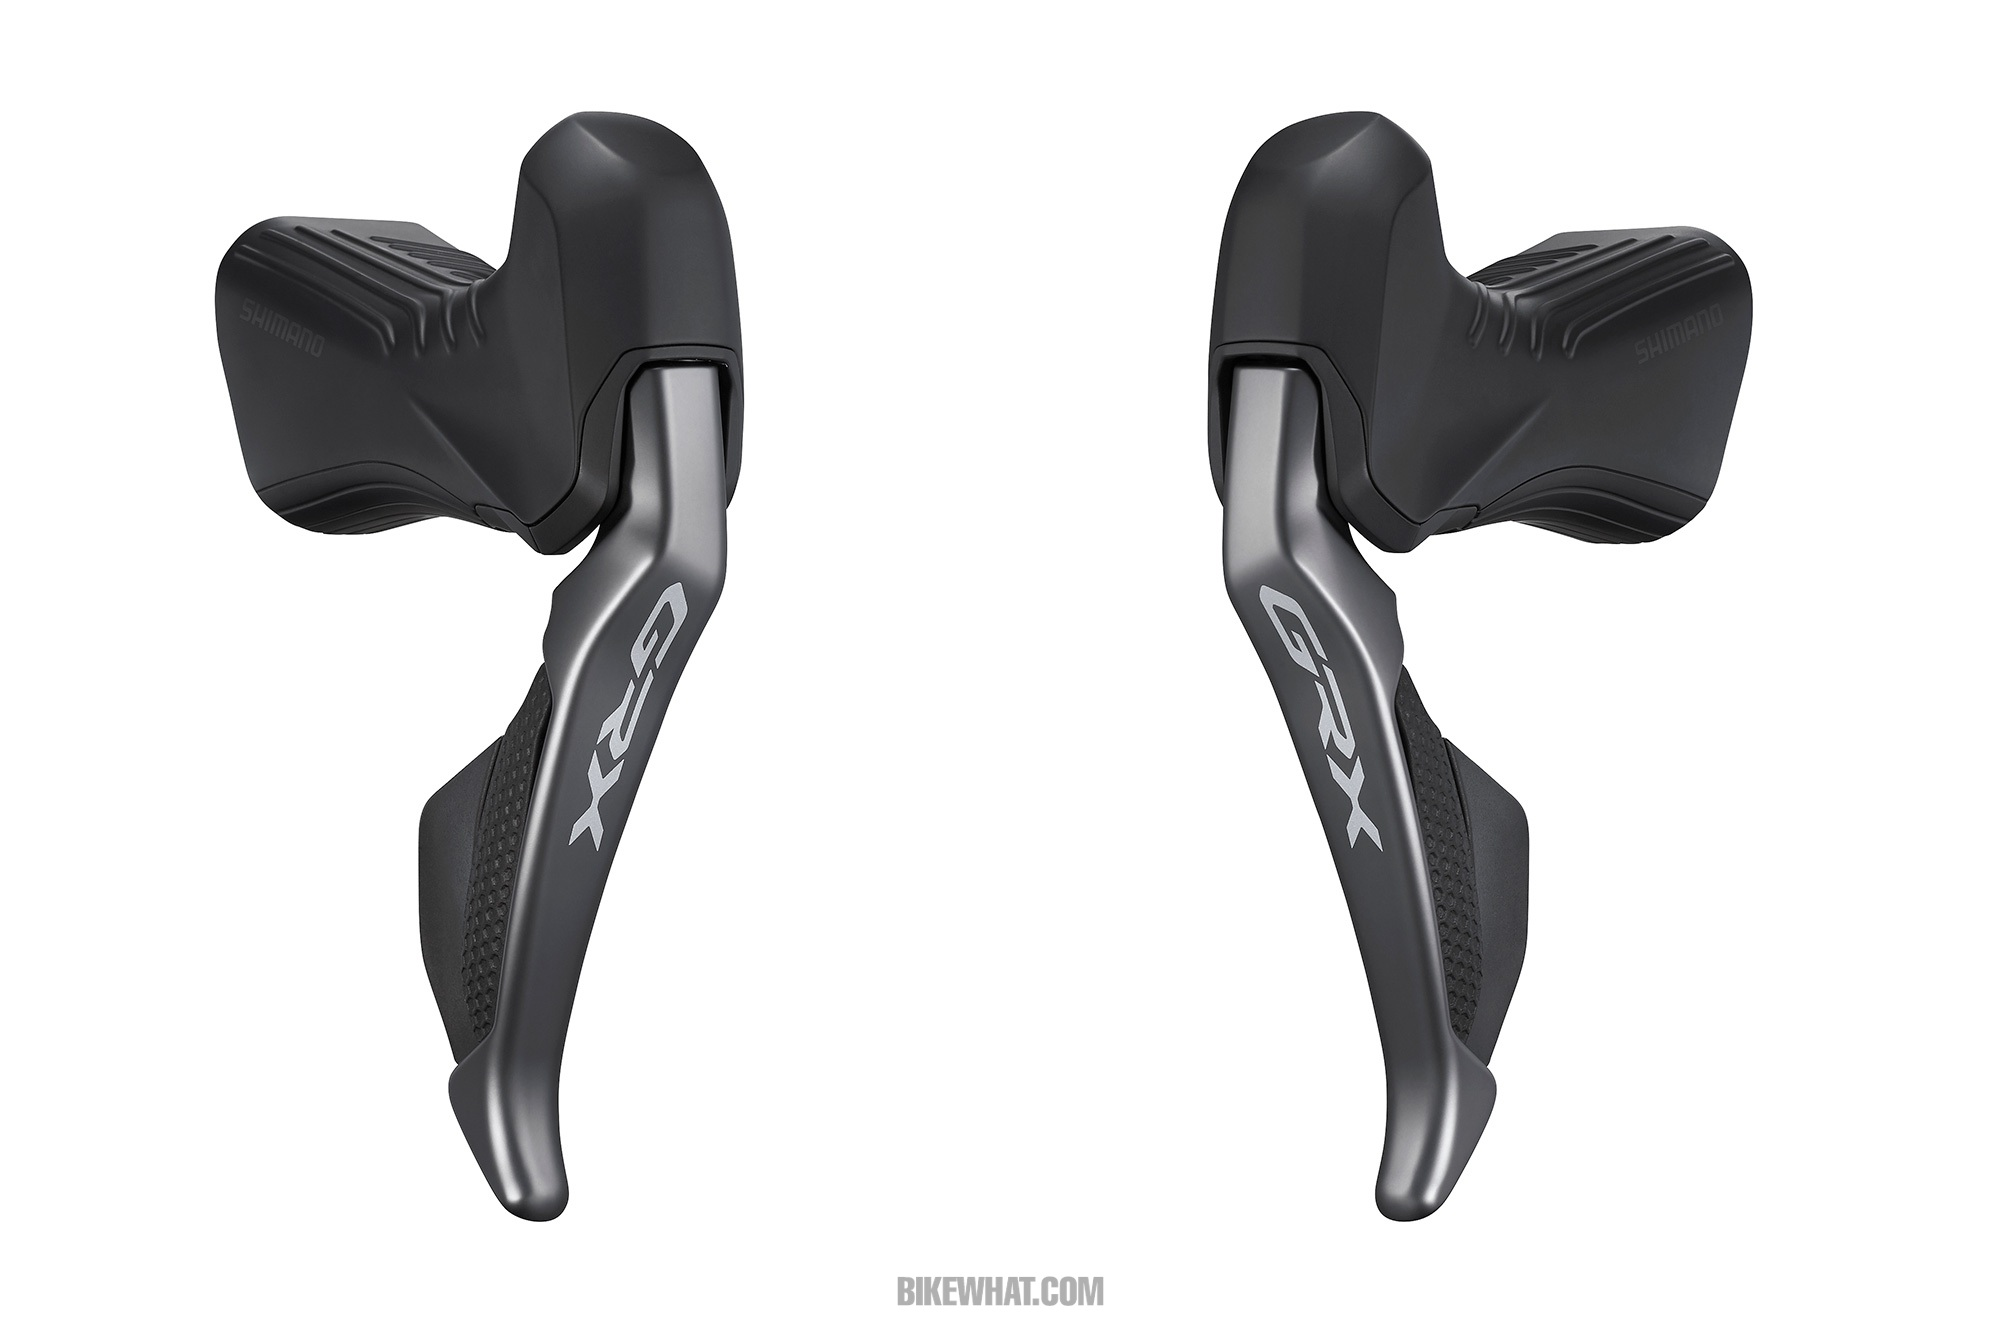 Preview_Shimano_GRX_ST-RX815.jpg